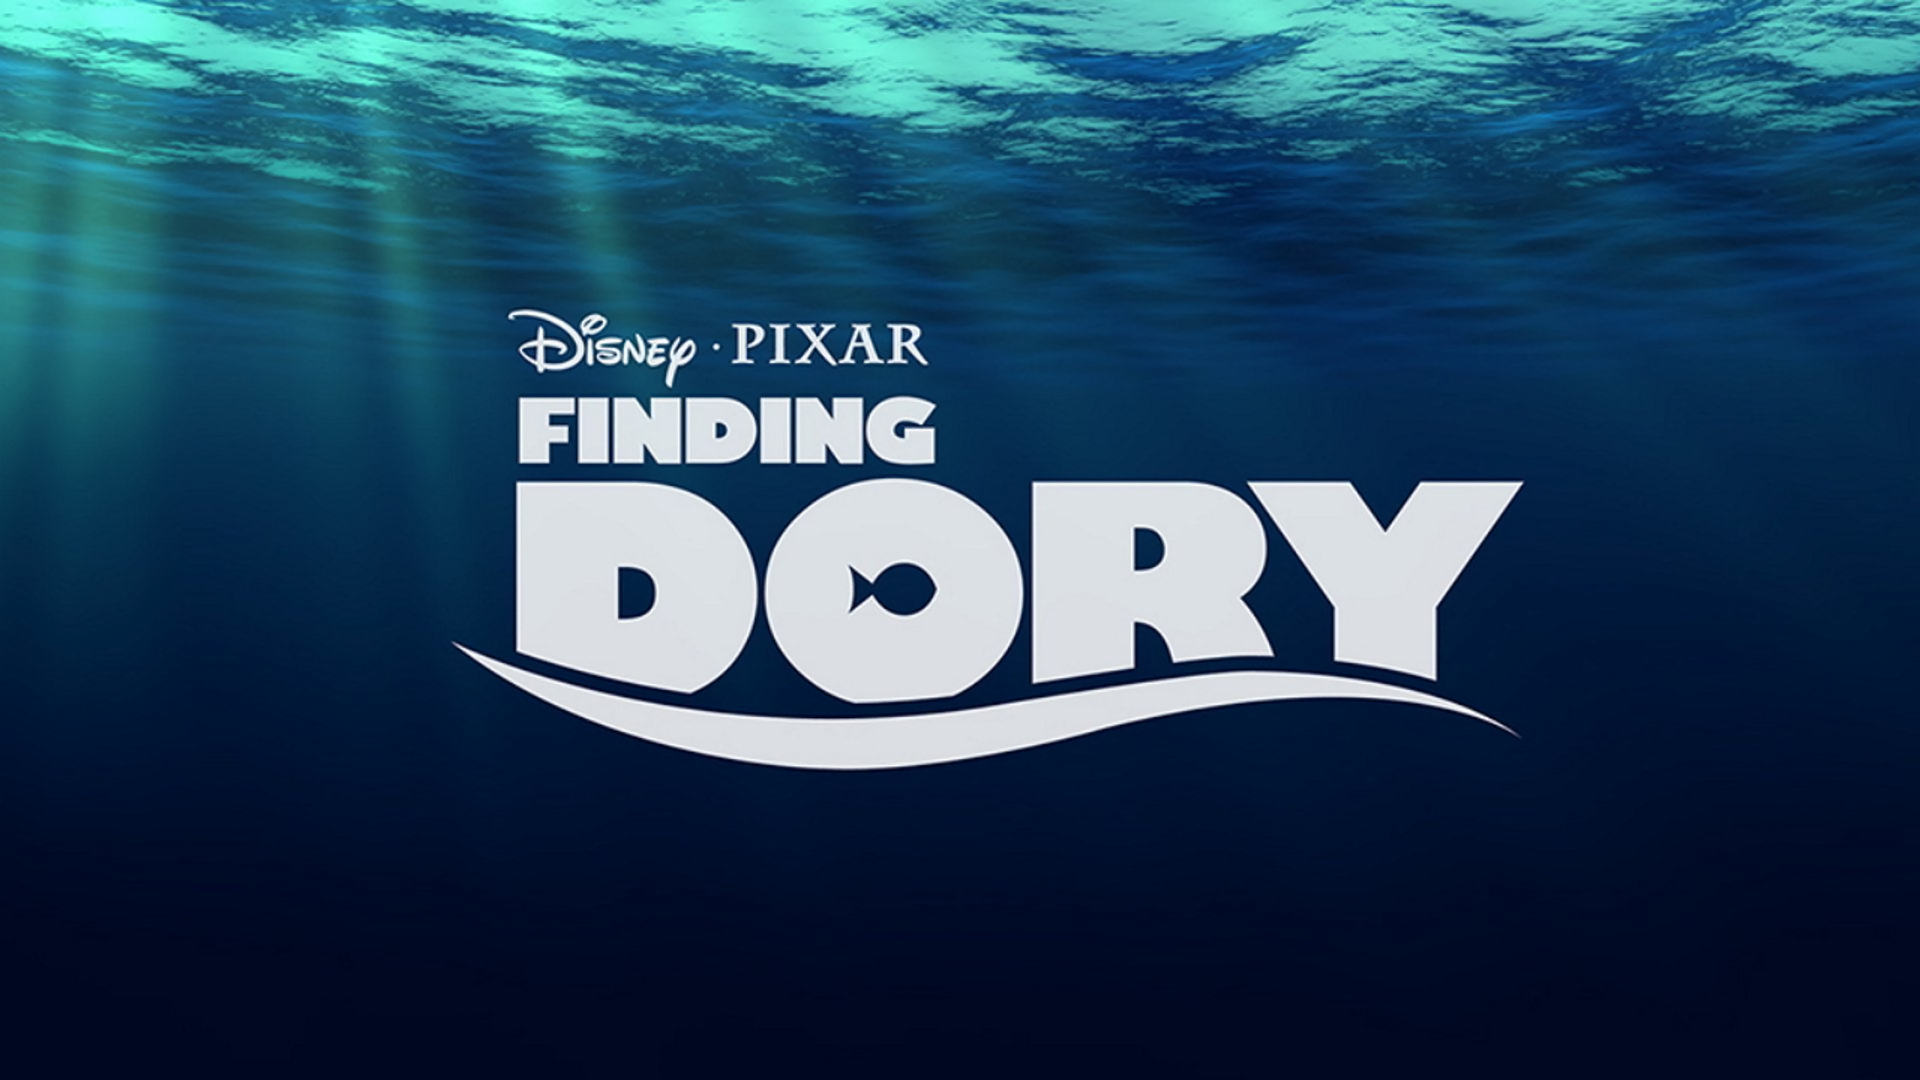 29 finding dory hd wallpapers background images wallpaper abyss hd wallpaper background image id453147 thecheapjerseys Choice Image